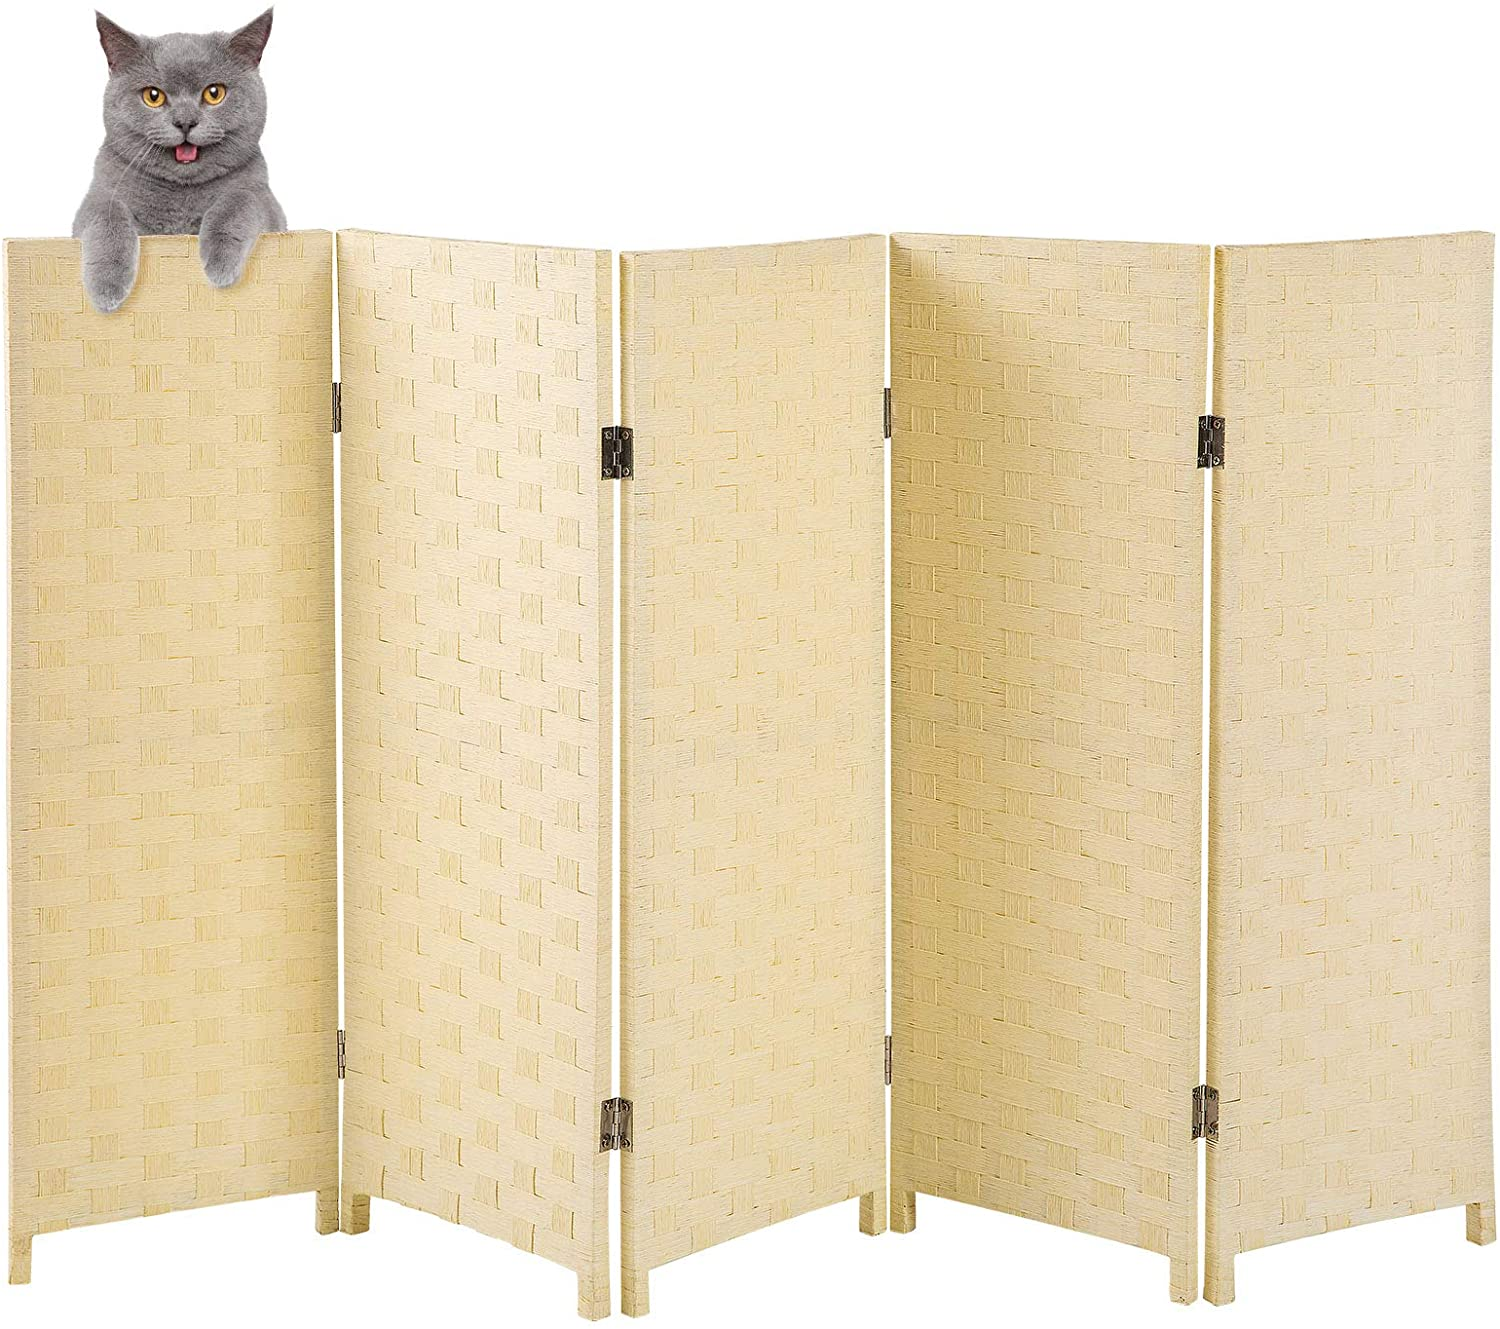 Yangbaga Cat Litter Box Privacy Screen 3.1' Denver 67% OFF of fixed price Mall 5' Foldab Wide High